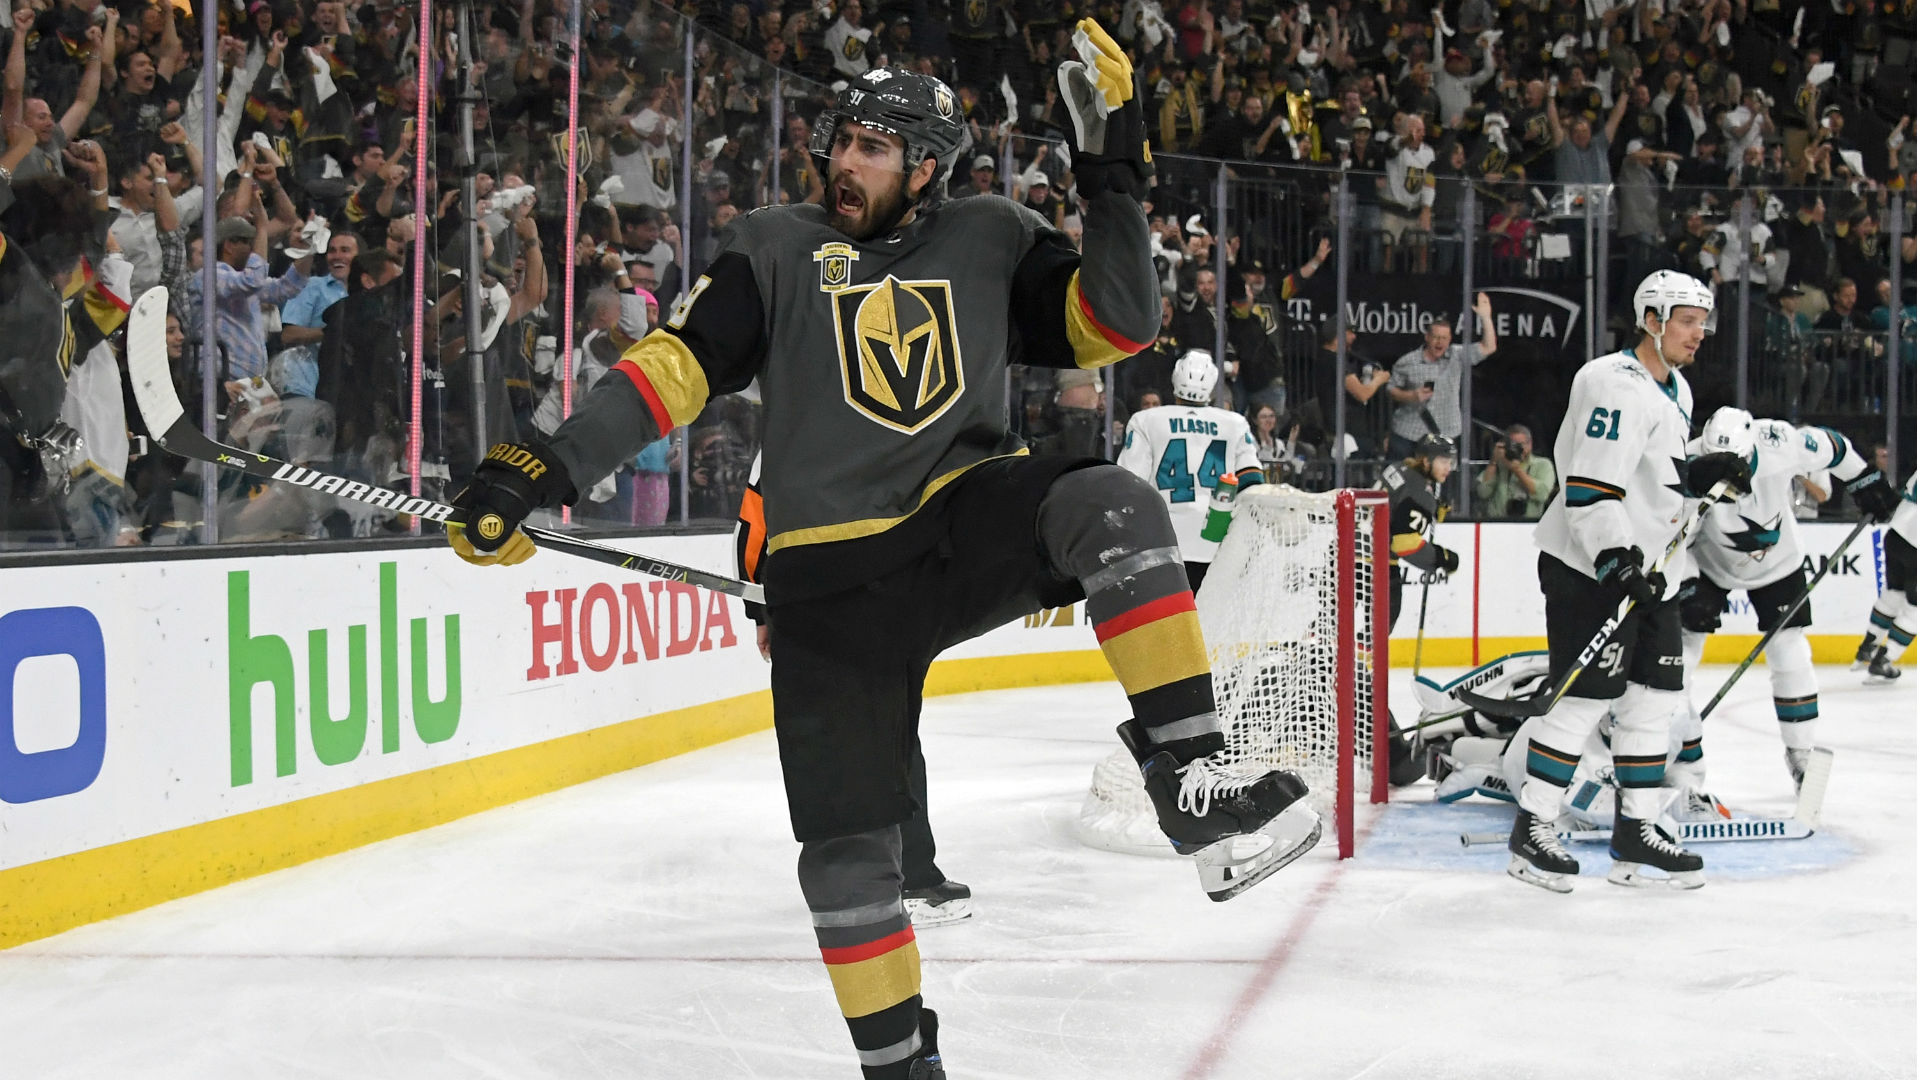 Golden Knights beat Sharks 5-3 in Game 5